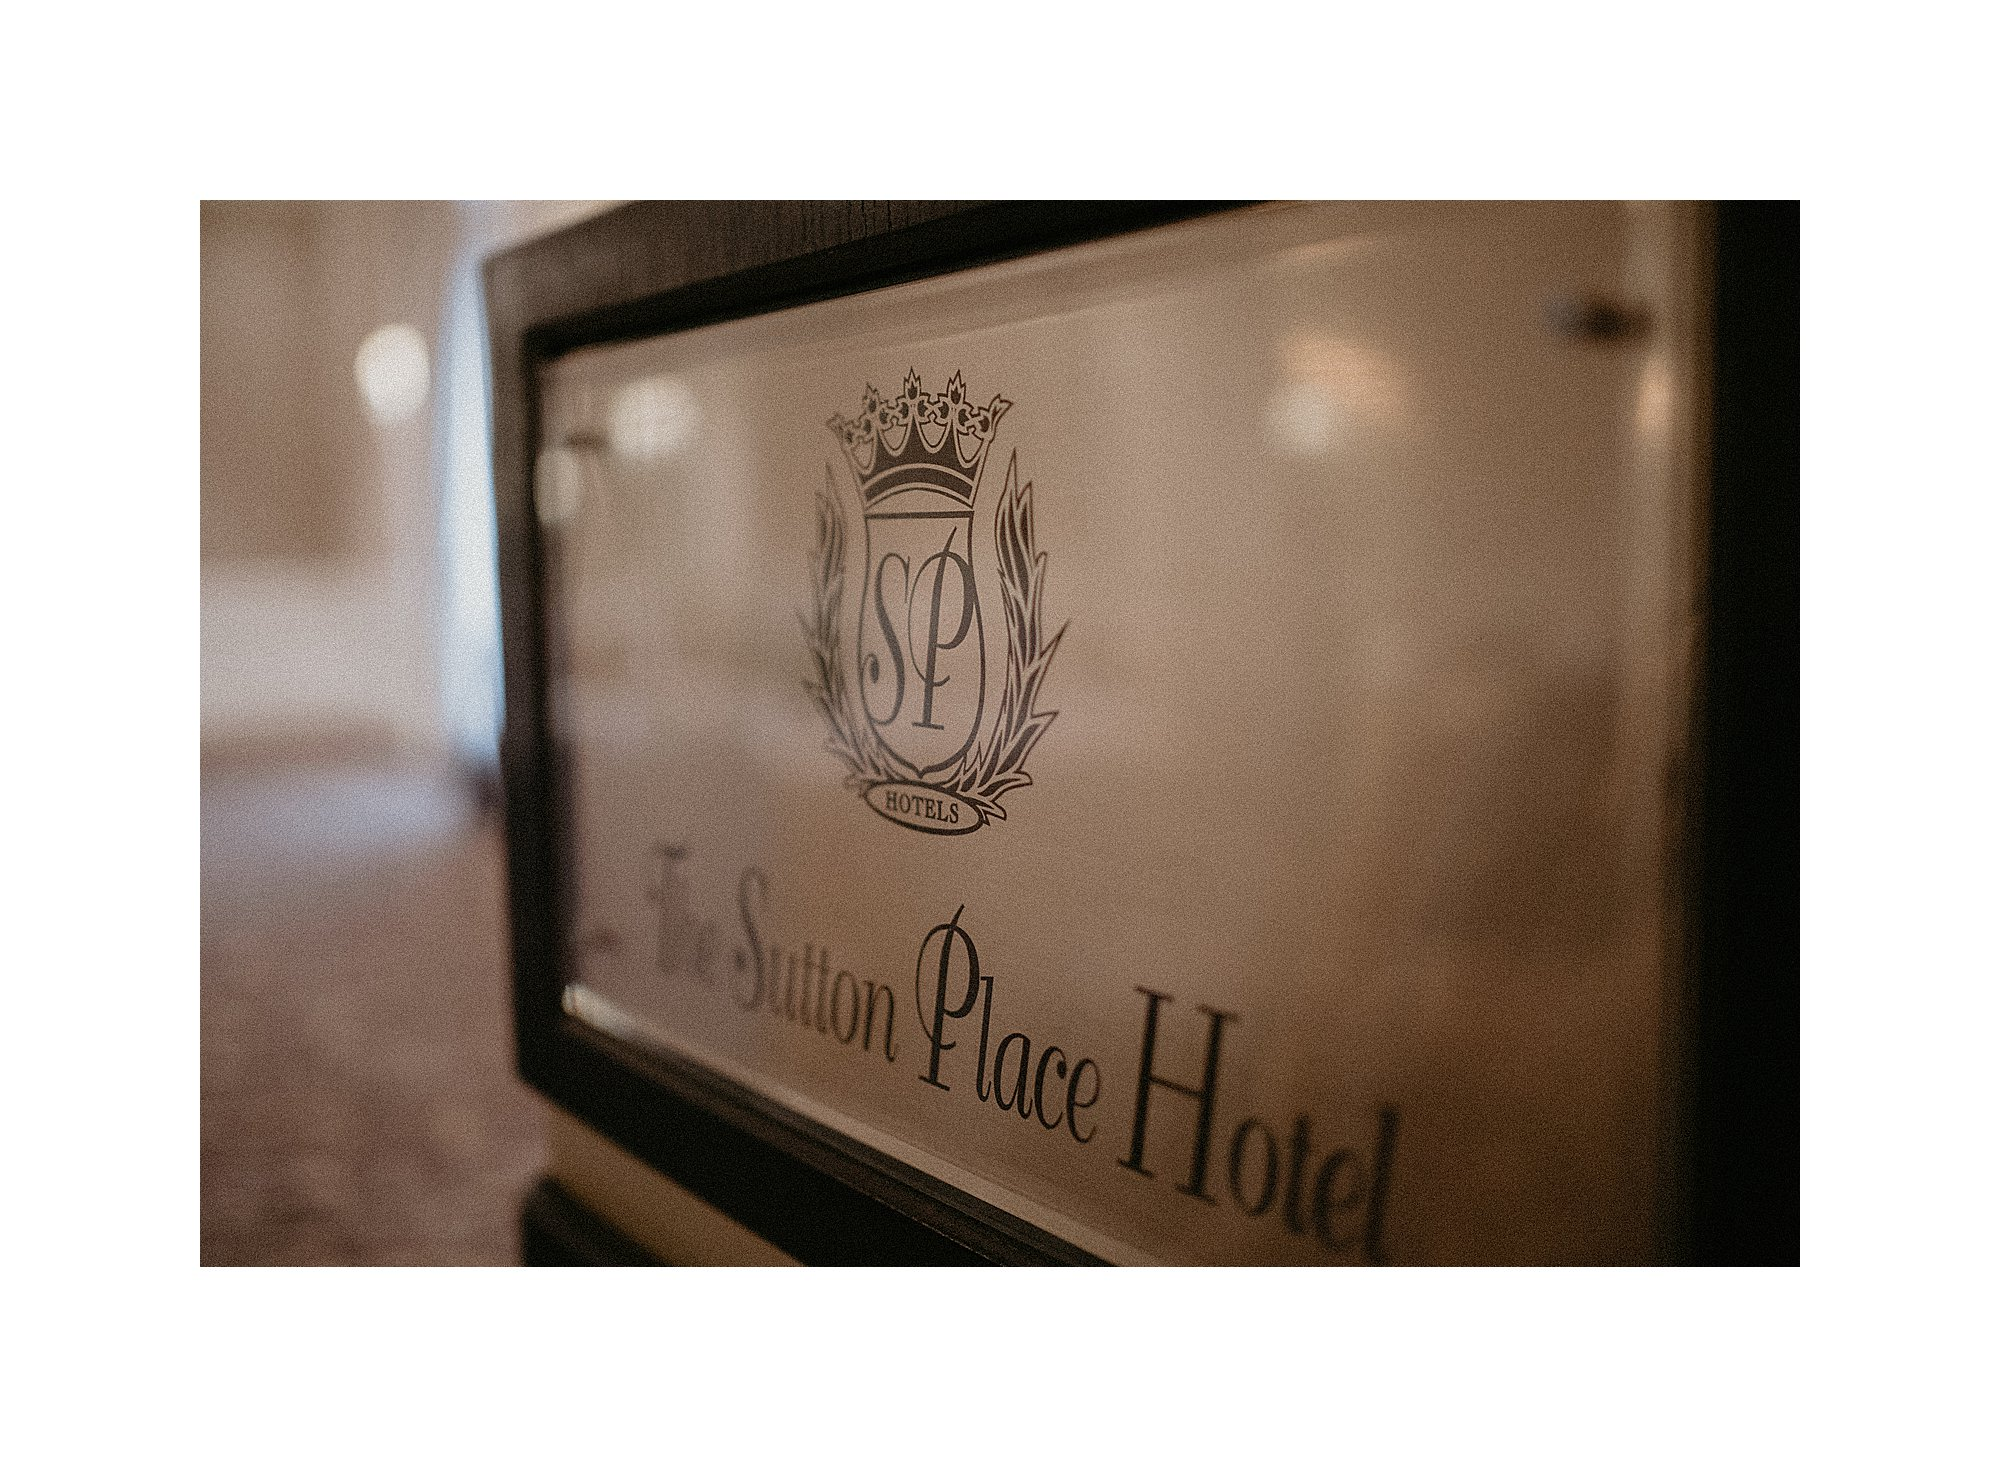 The Sutton Place Hotel Sign